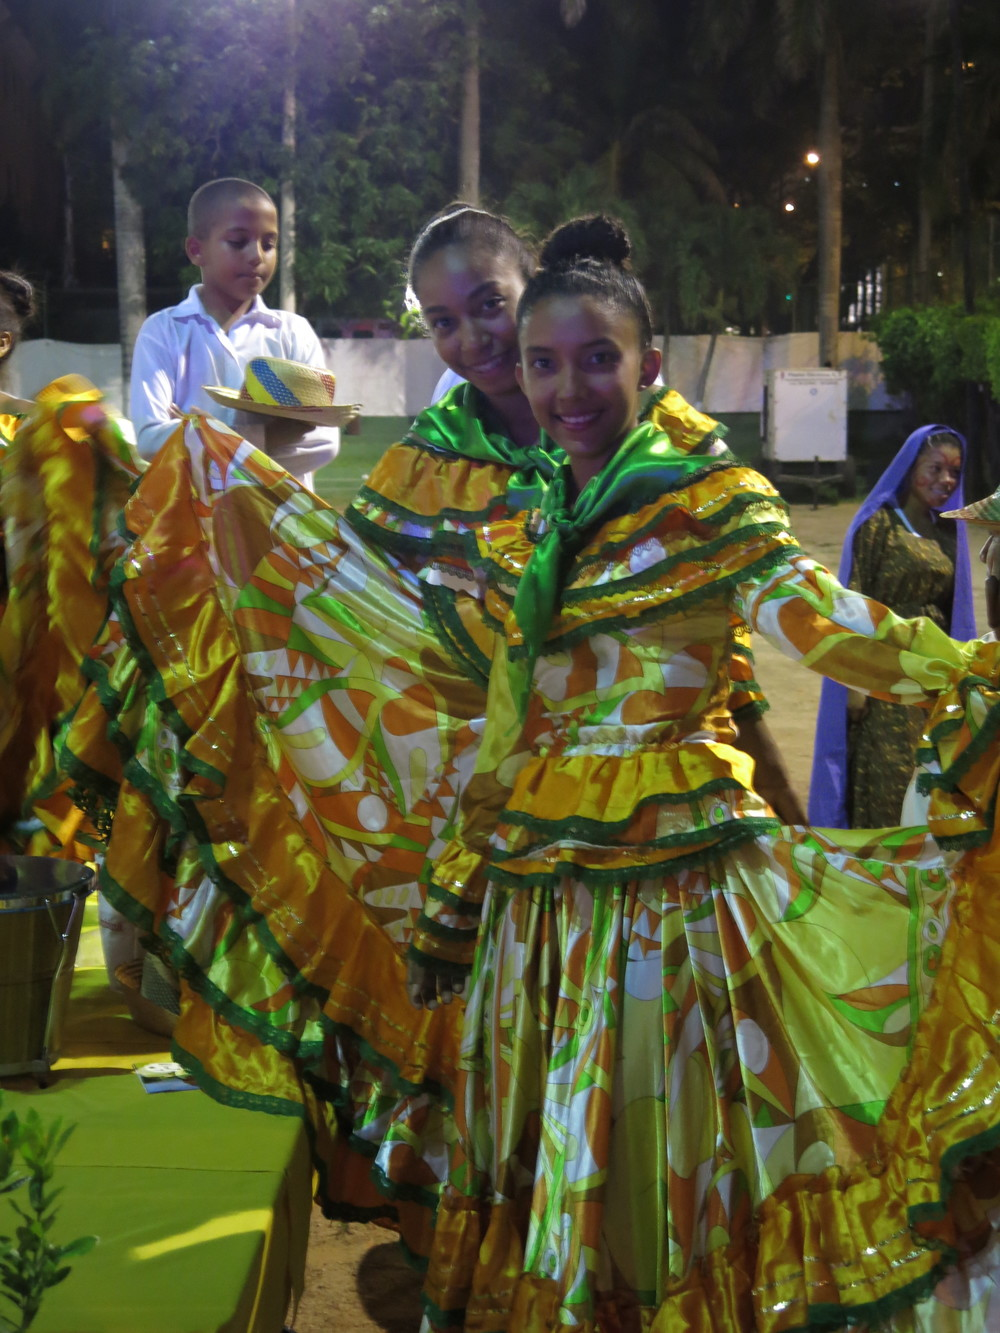 Bailarina, dancer in a traditional Colombian costume